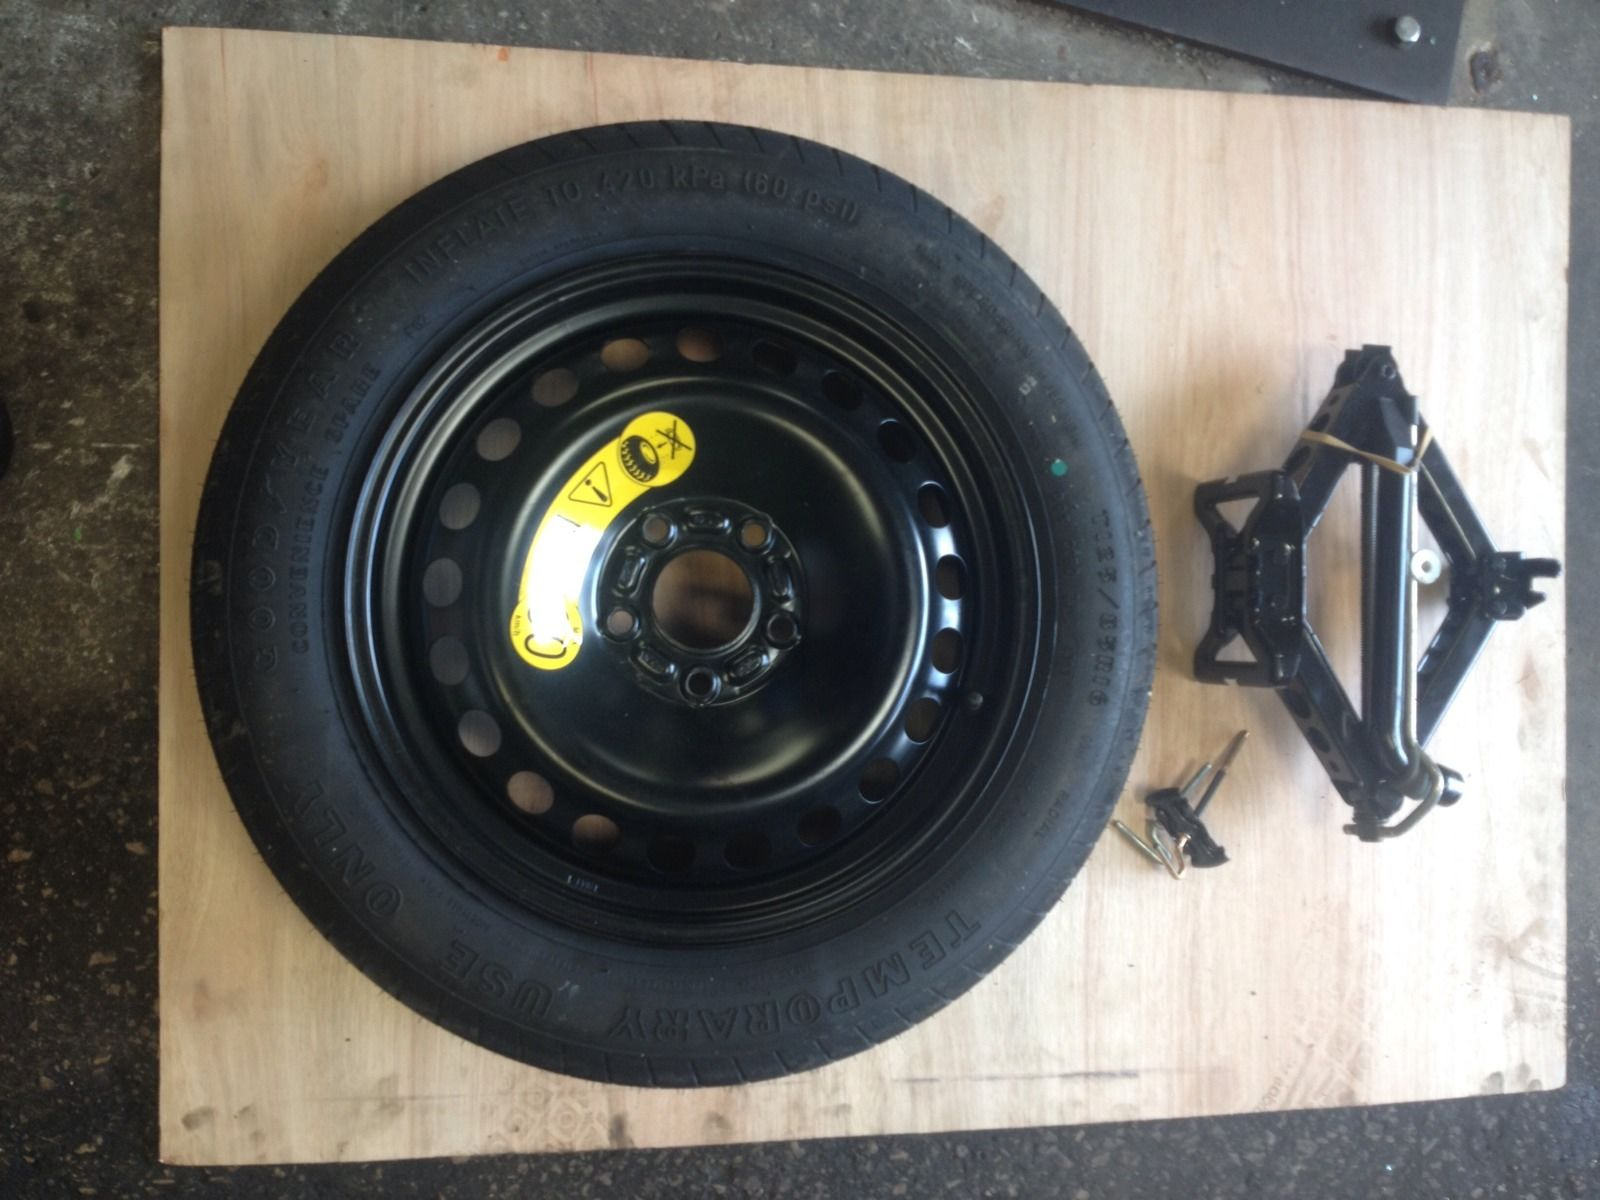 Ford Focus C Max Spare Wheel And Tools Incl Jack Brace And